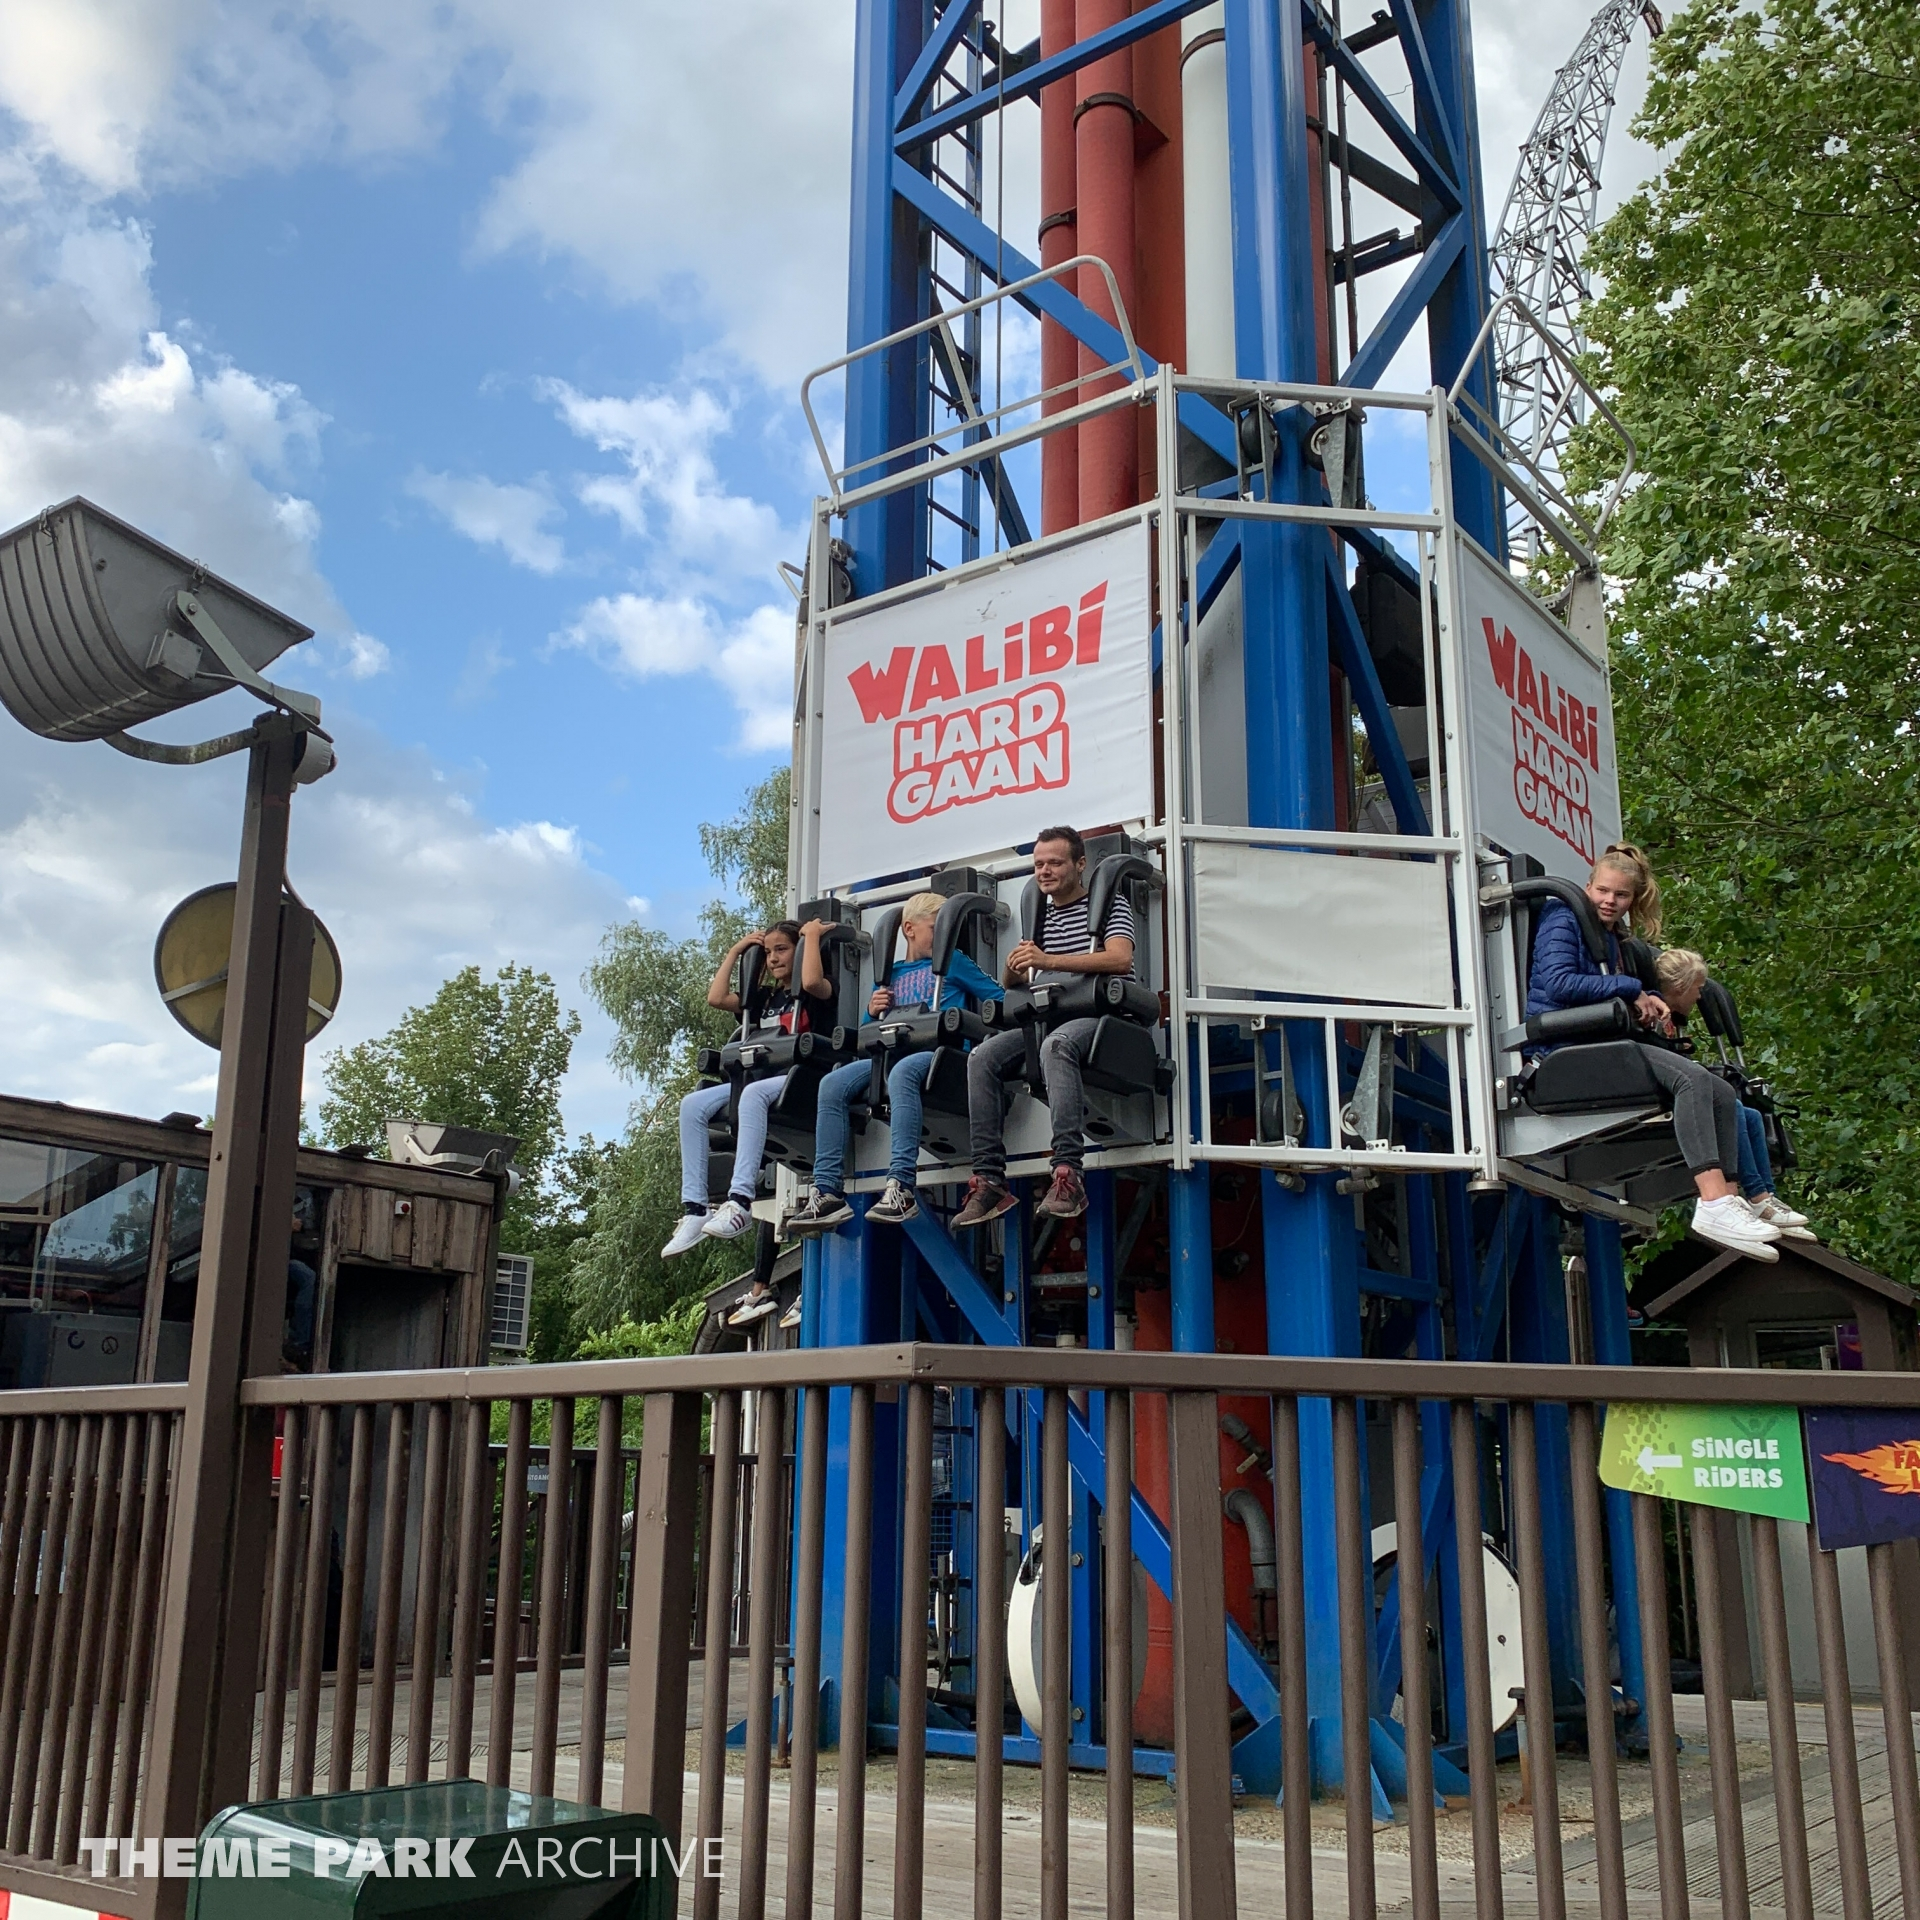 Space Shot at Walibi Holland